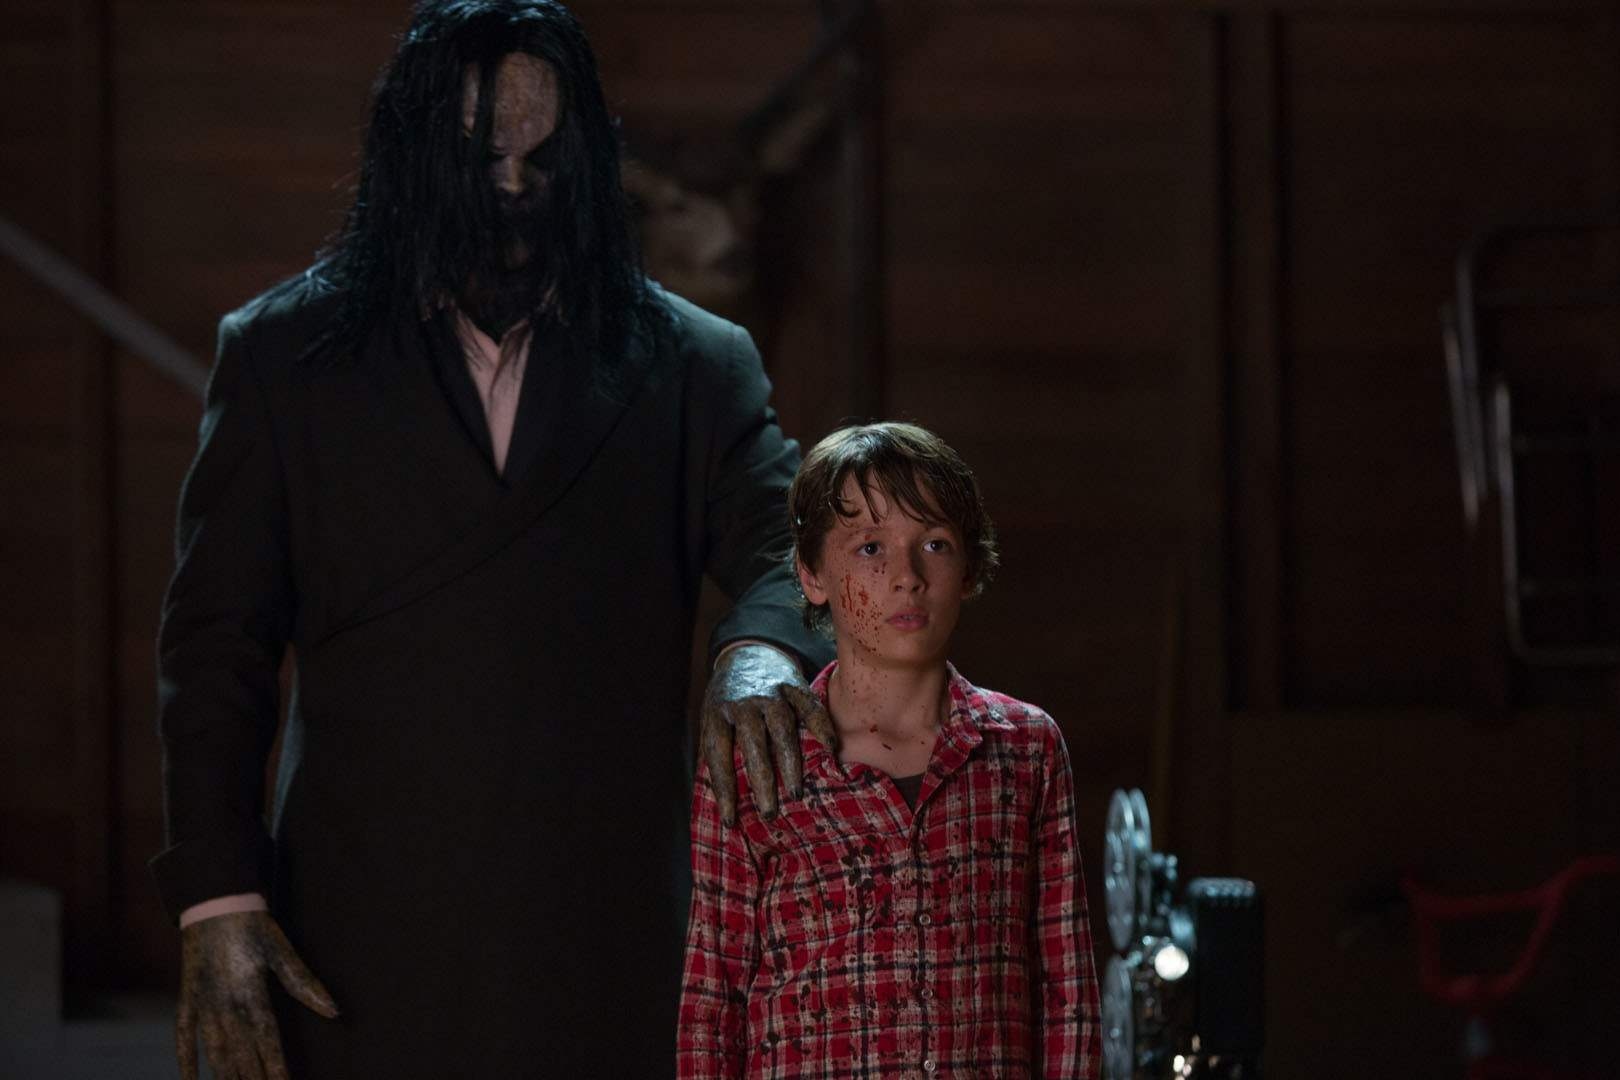 Bagul and Dartanian Sloan in Sinister 2